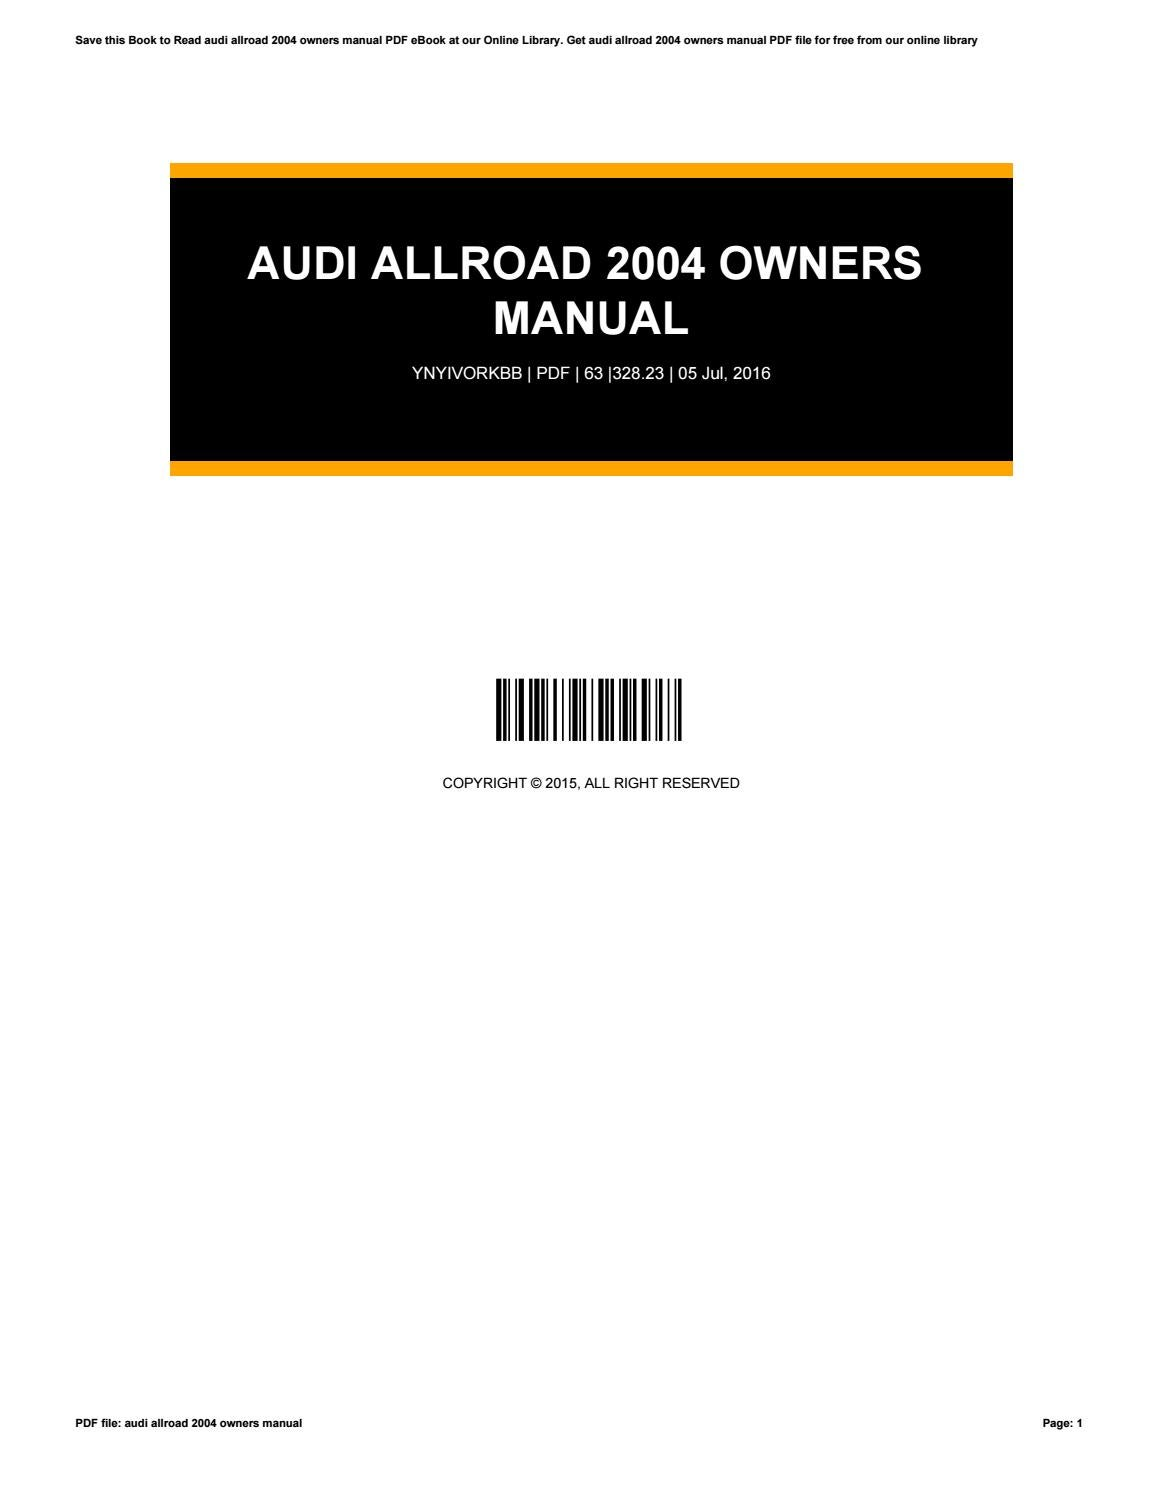 Audi A6 Electrical Wiring Diagrams Manual Guide Free Download User